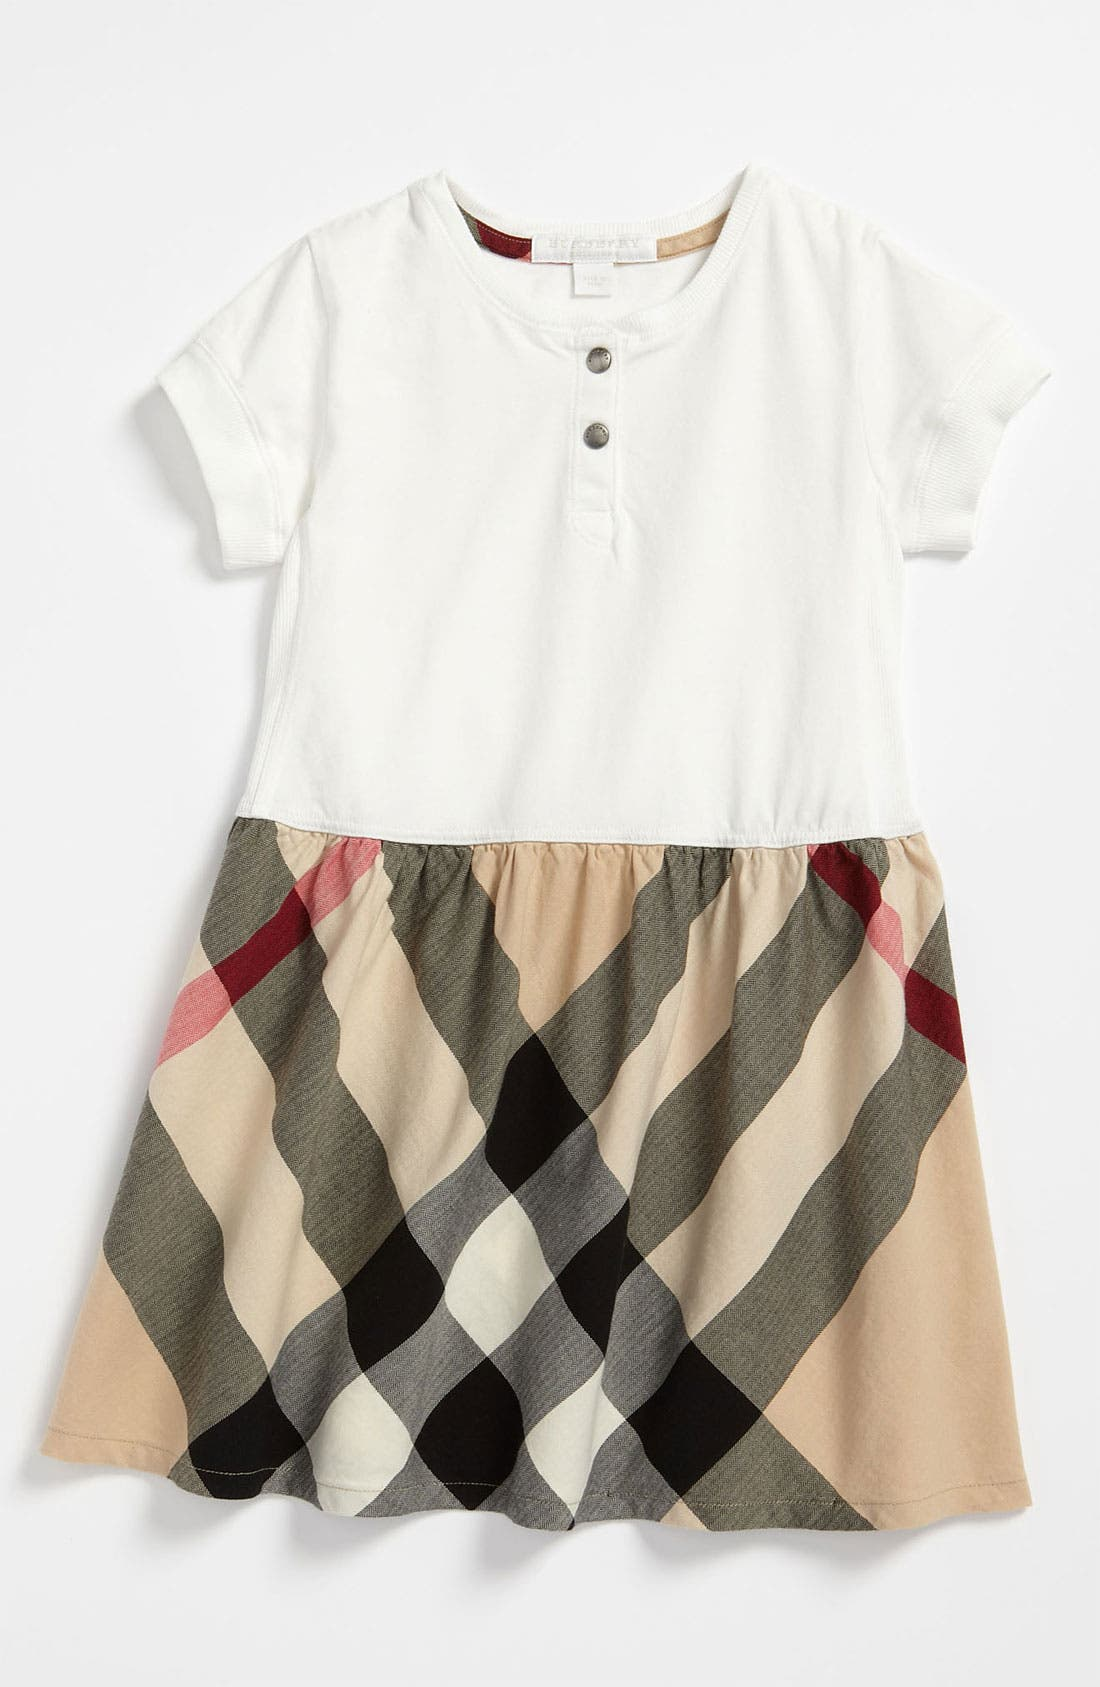 Main Image - Burberry Check Print Dress (Toddler)